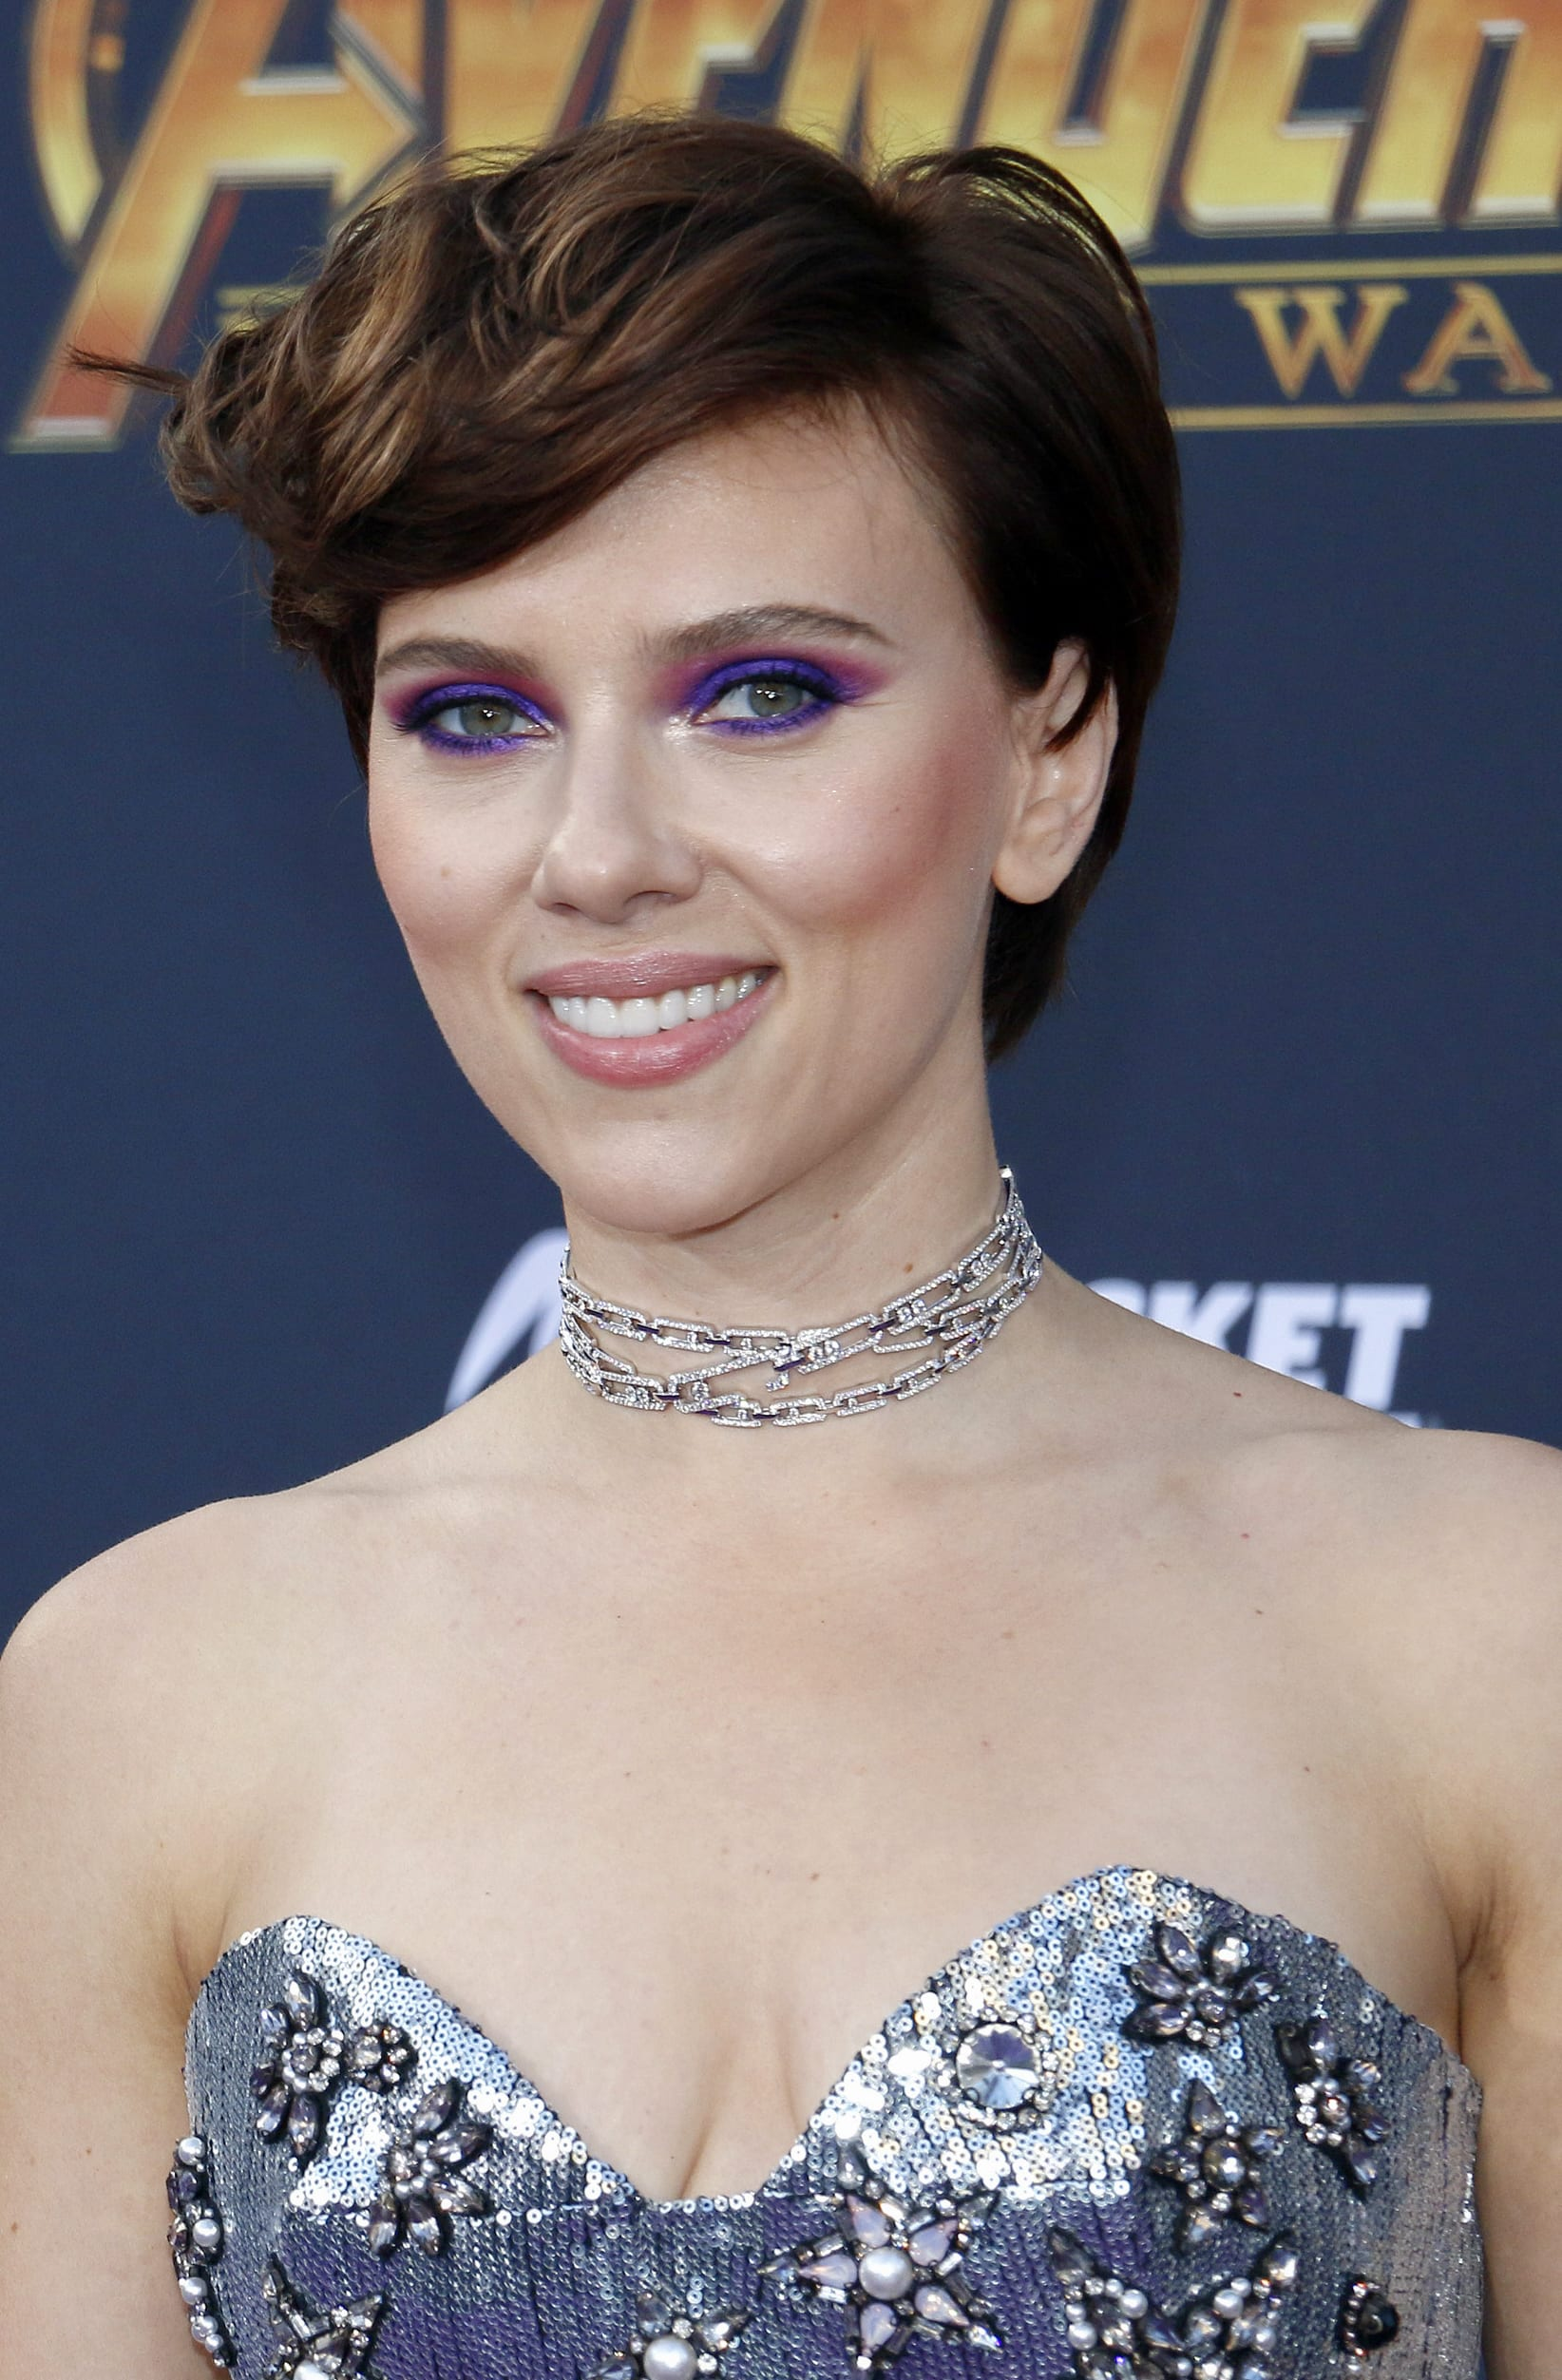 Scarlett Johansson's Short Crop and Wavy Side Fringe